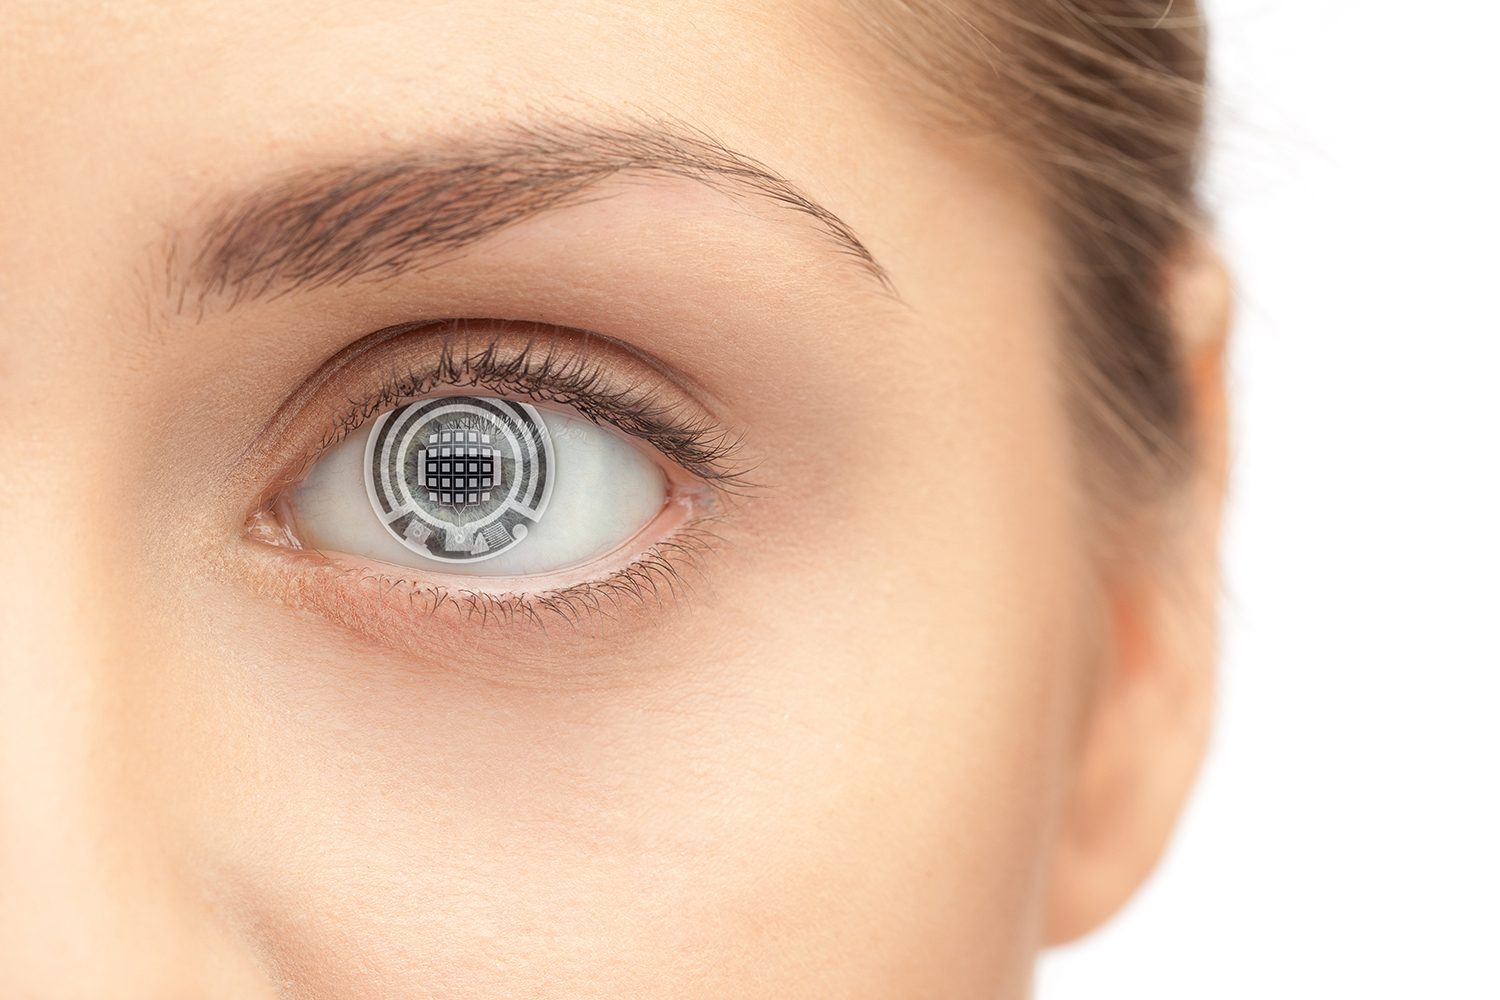 Future contact lenses may measure glucose, detect cancer ...